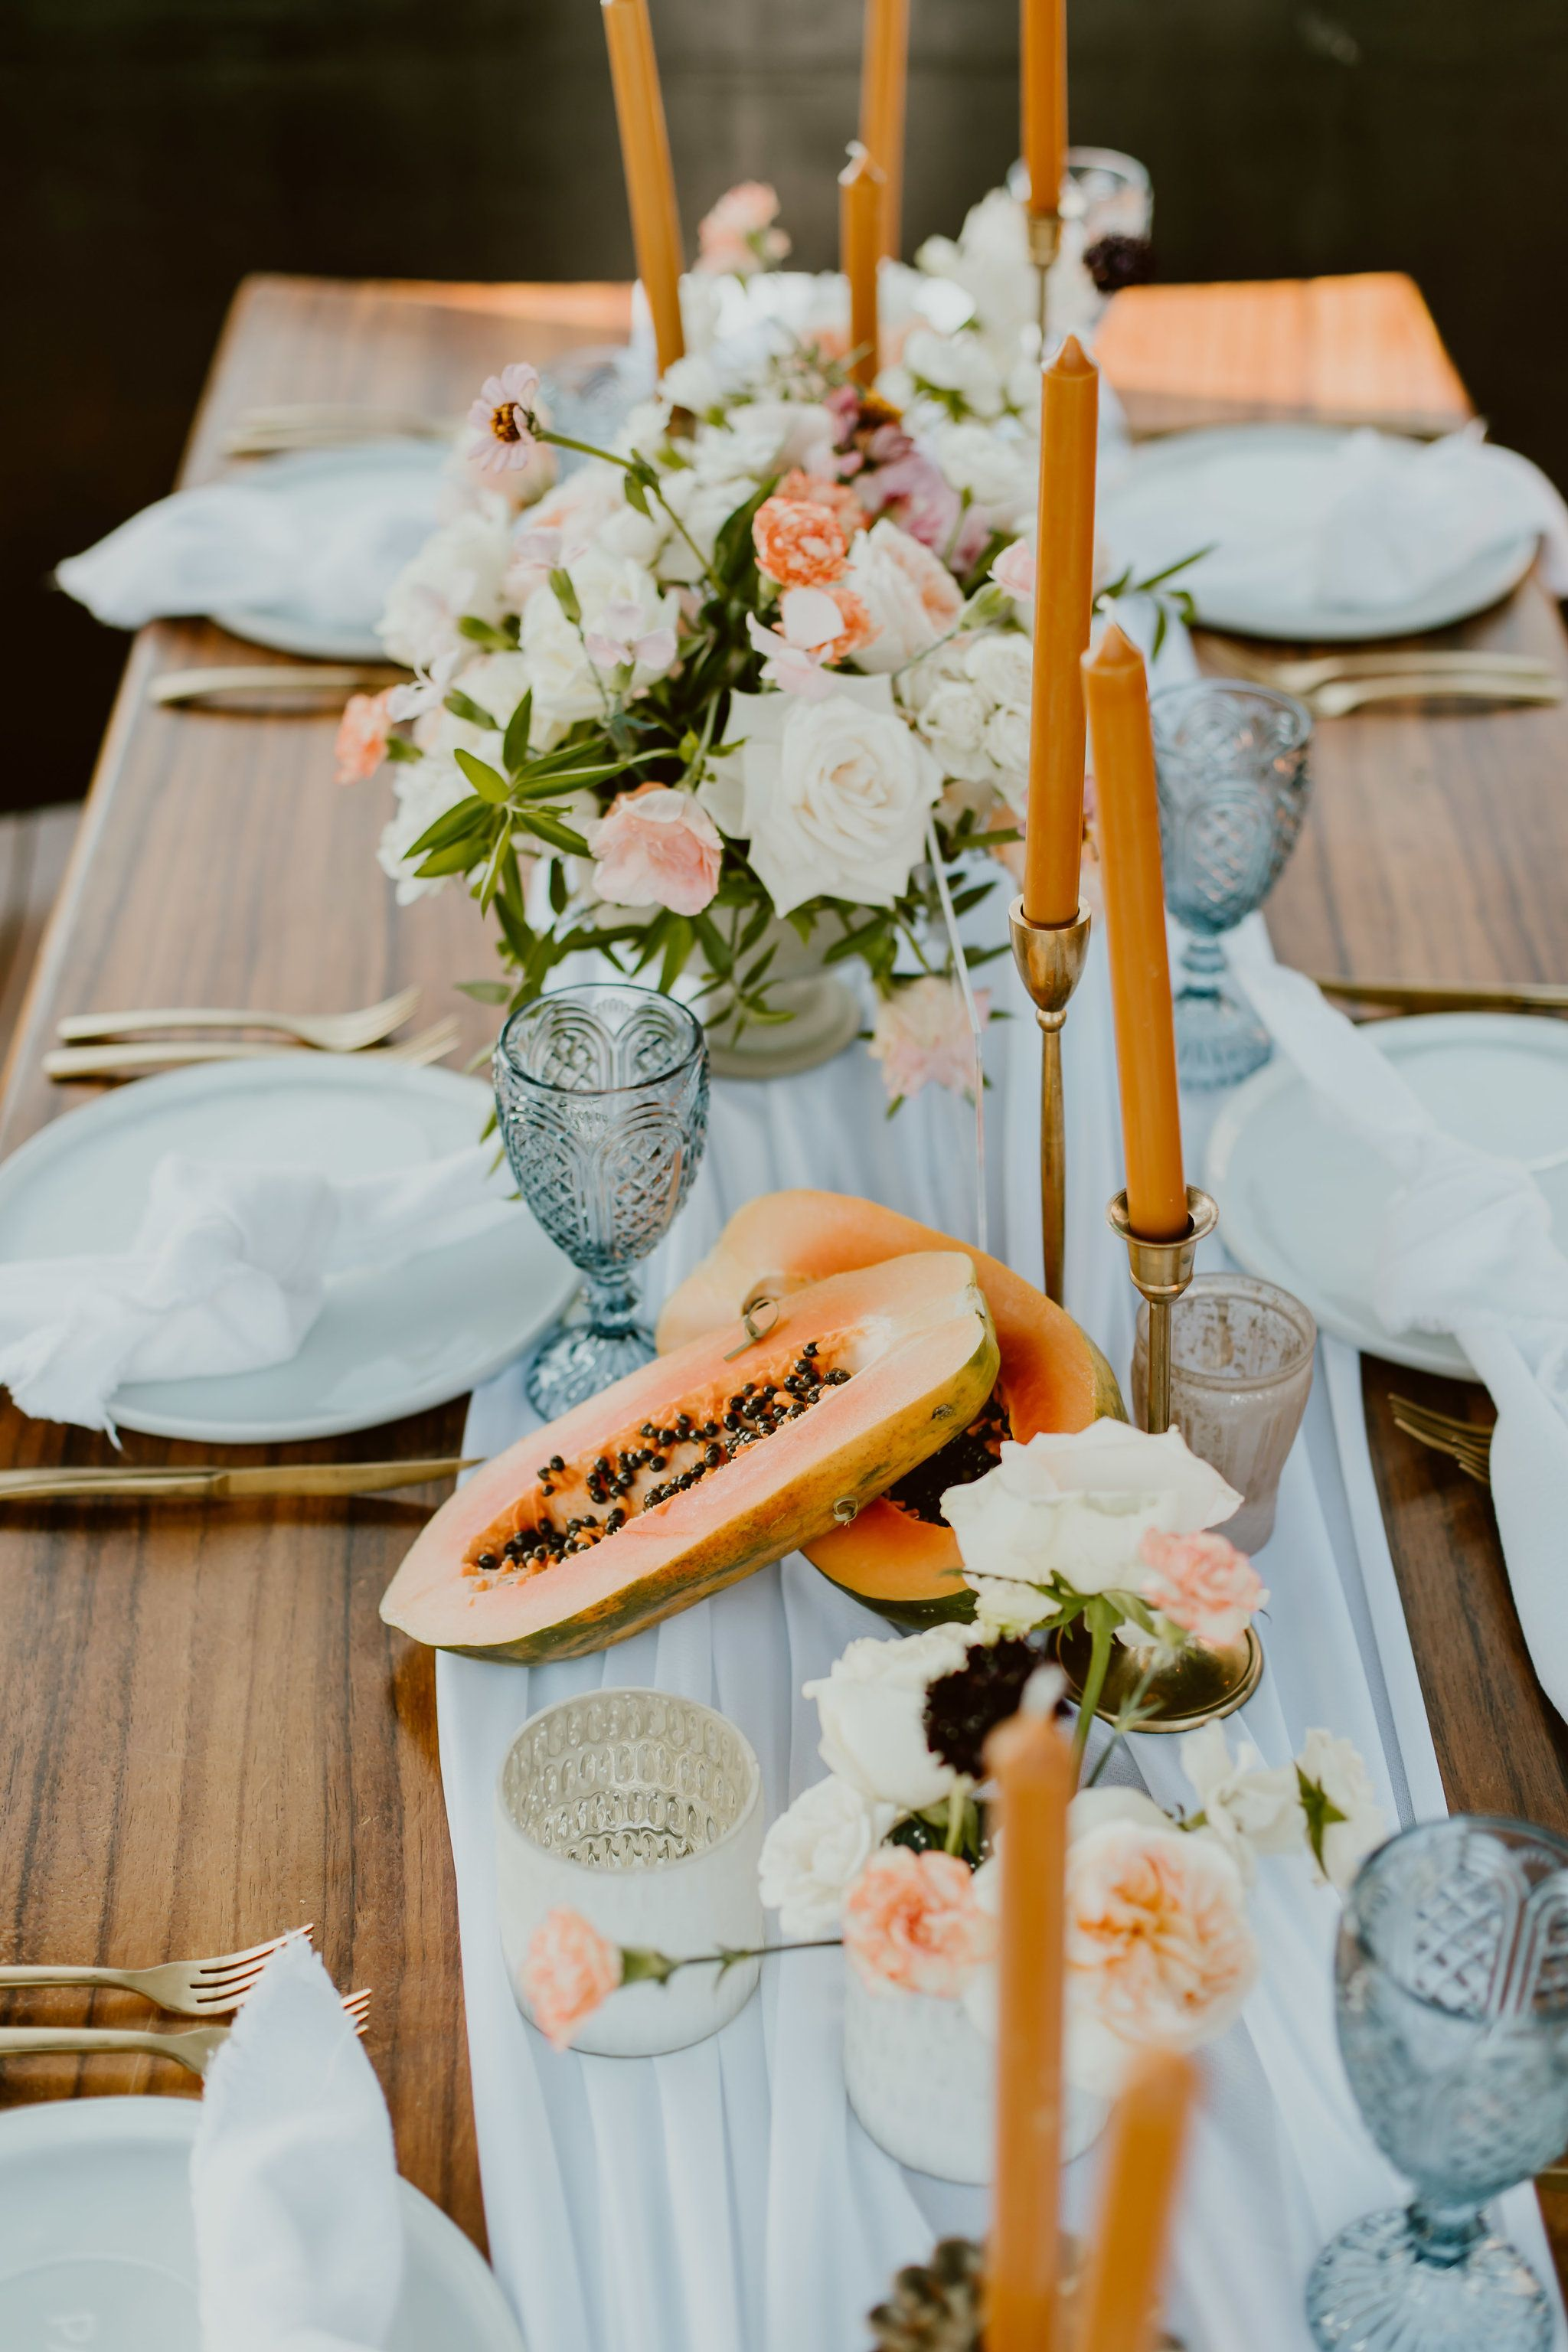 Another photo by Ana and Jerome Photography of the Wedding Table design at The Rooftop at The Cape by Thompson Hotels in Cabo San Lucas Mexico. Wedding Planning by Cabo Wedding Services. Wedding Design by Lola from Florenta